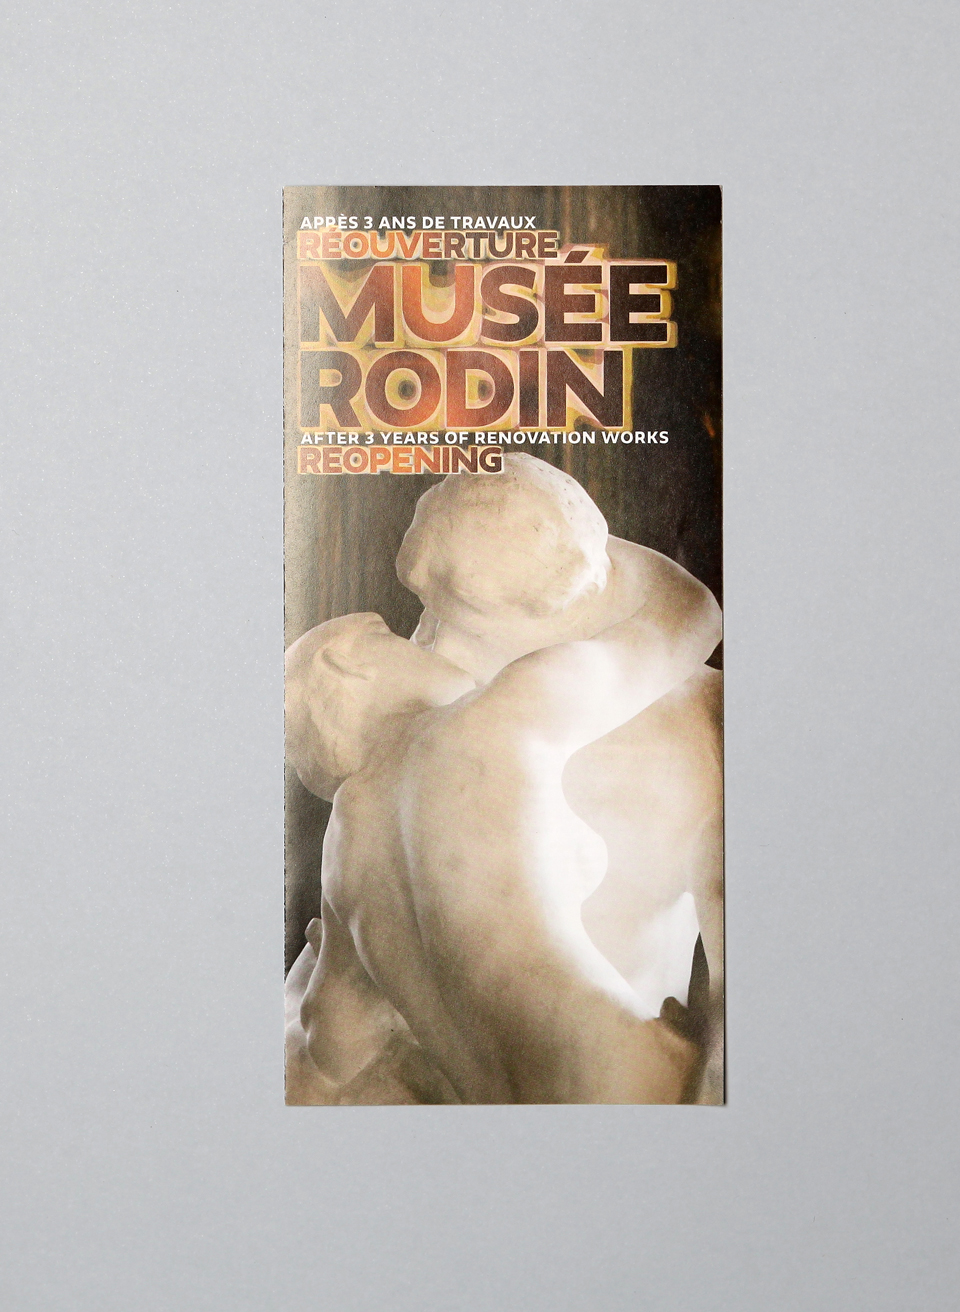 museeRodin_reouverture_06